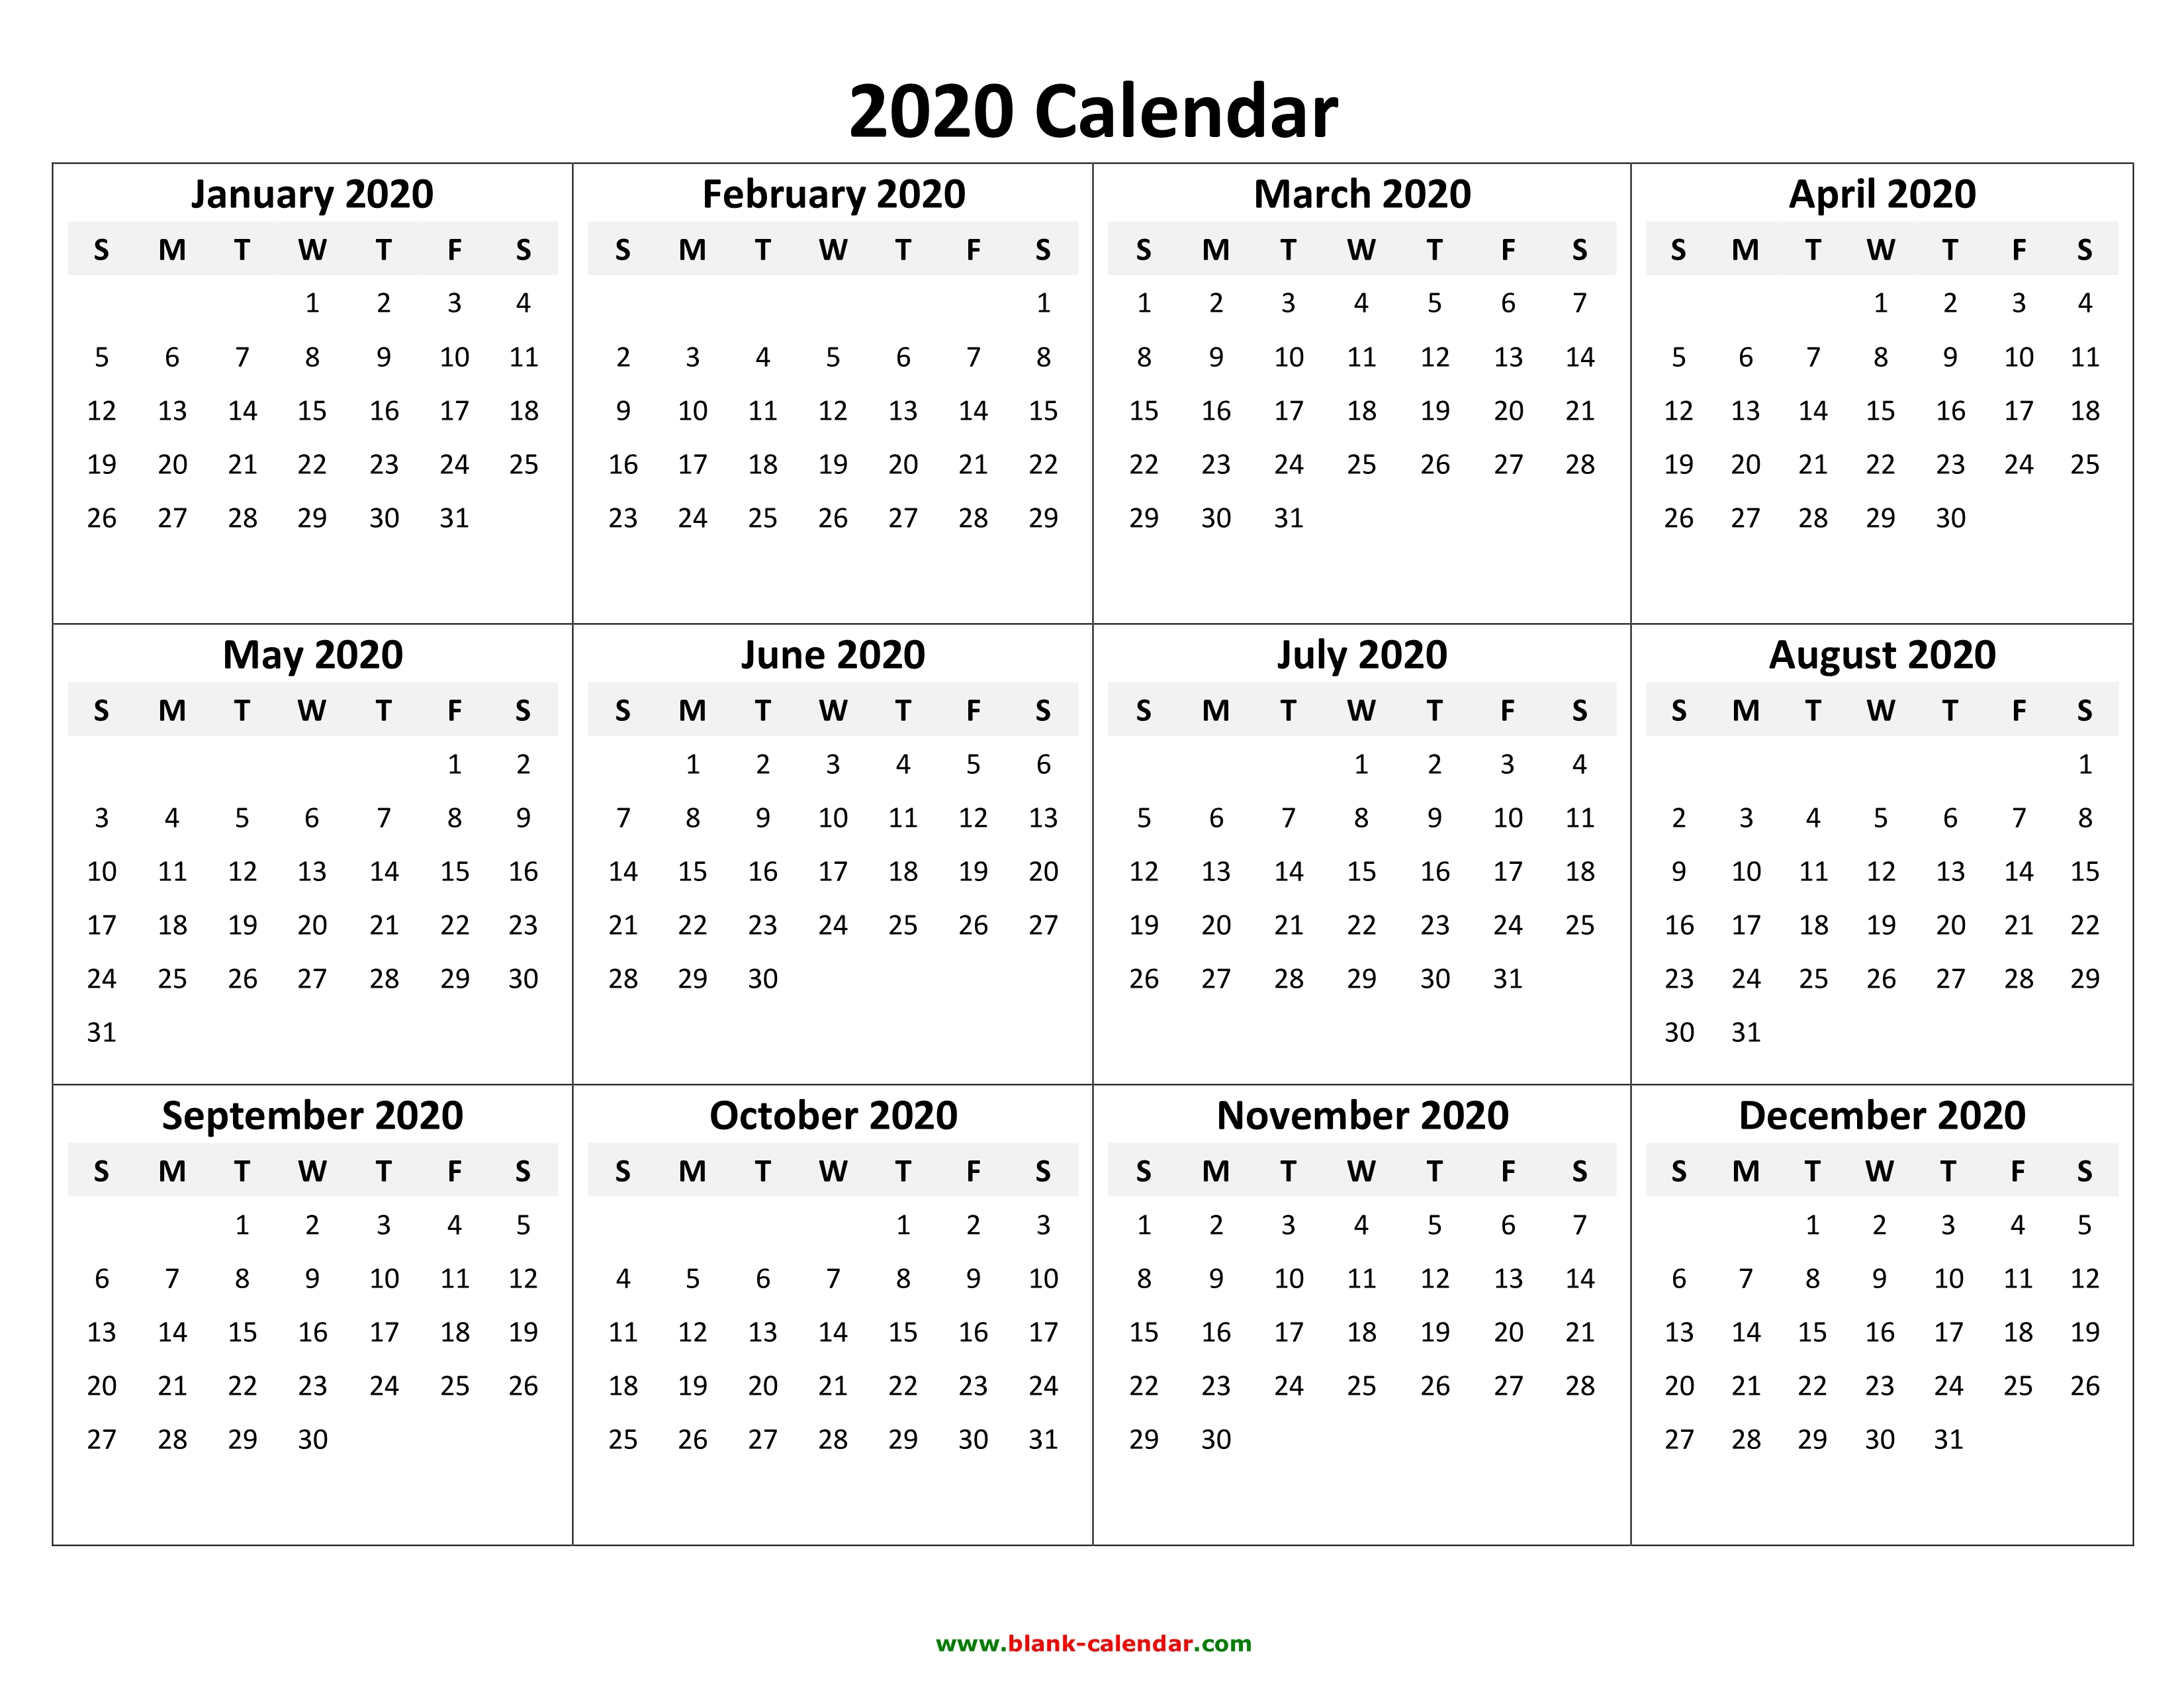 2020 2020 Calendar Printable | Isacl regarding Free 2020Printable Calendars Without Downloading